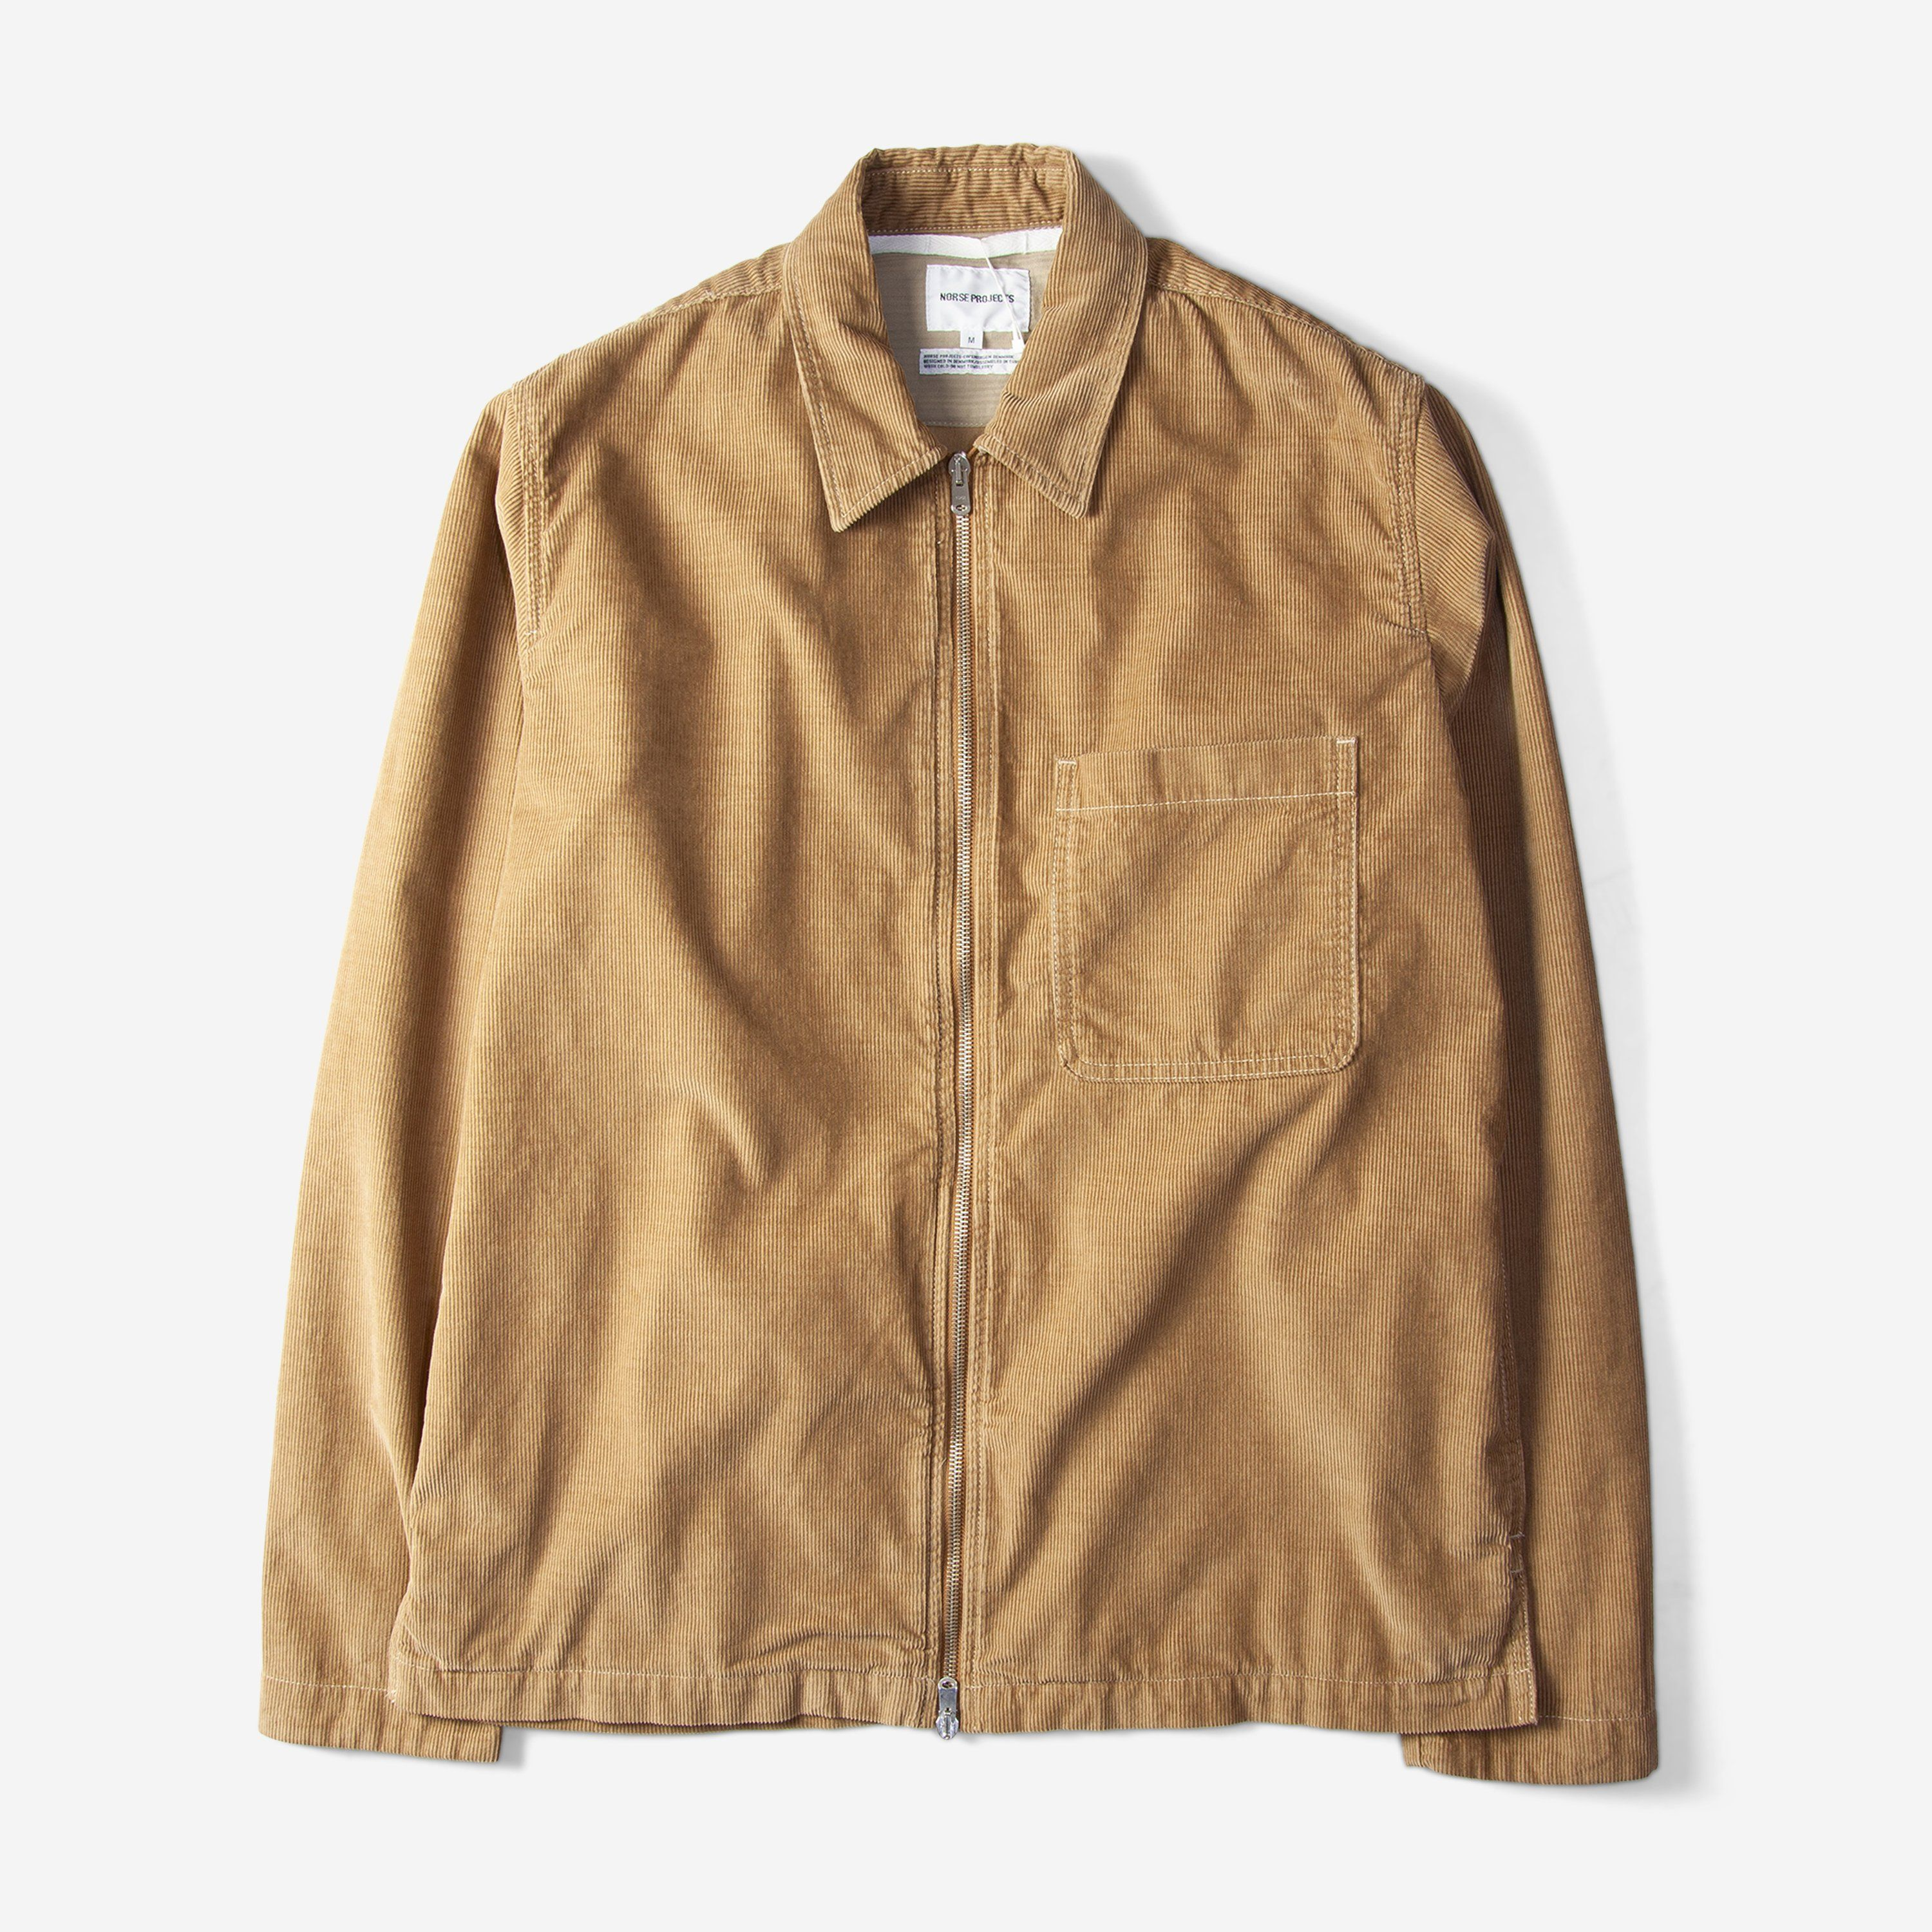 2e5859a88 Norse Projects Jens Cord Zip Shirt Camel Free SHIPPING OVER £50.00  1856   grants